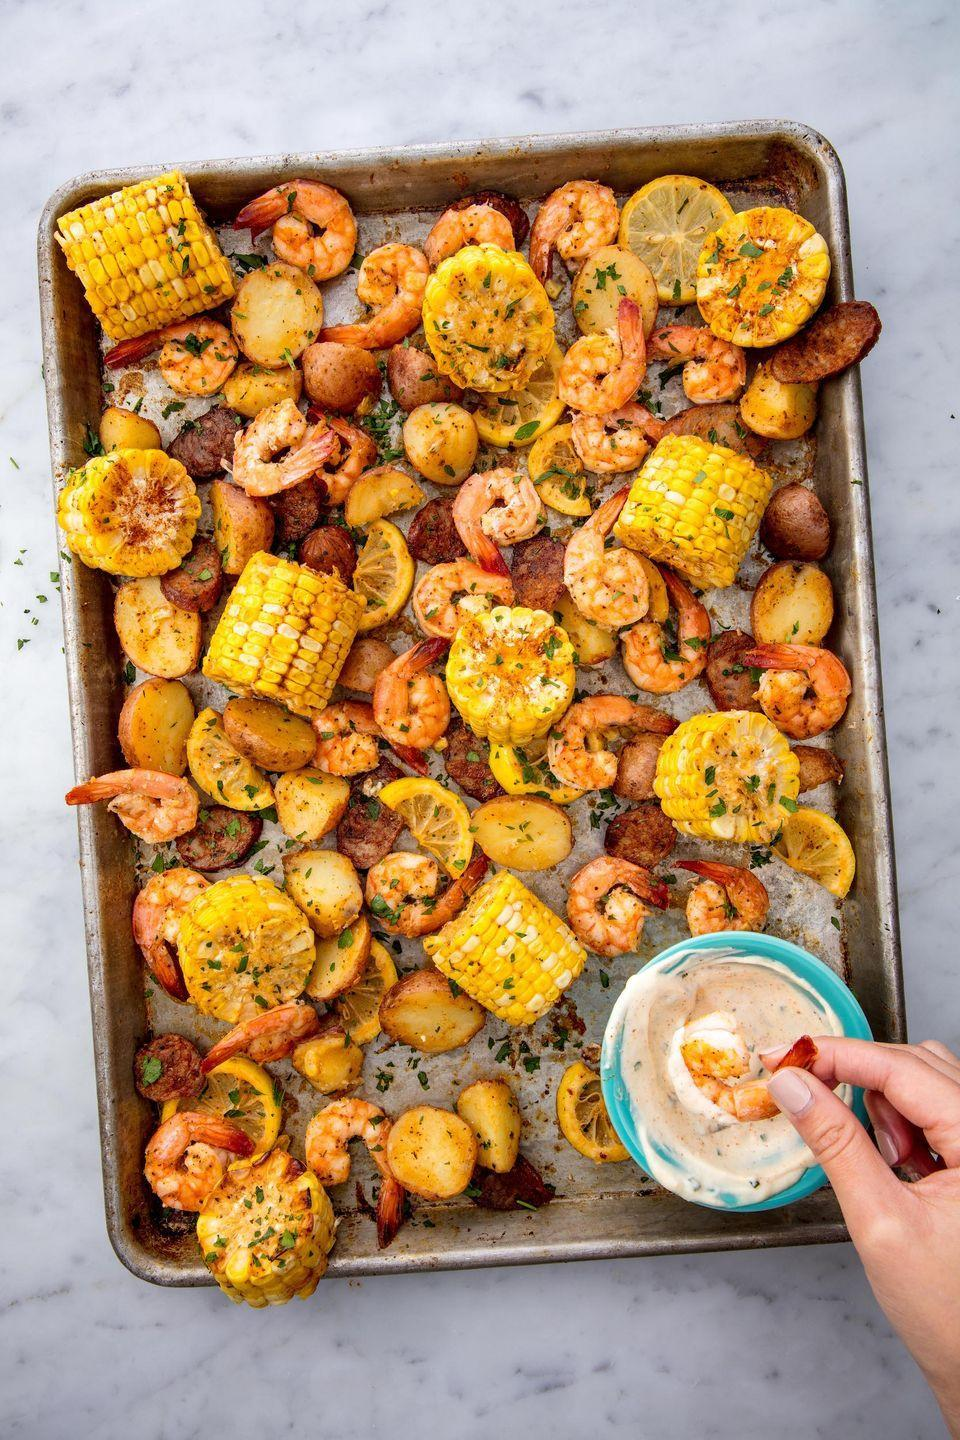 """<p>A mix of shrimp, andouille sausage, corn, and potatoes, this Cajun summer favorite is the super satisfying.</p><p>Get the recipe from <a href=""""https://www.delish.com/cooking/recipe-ideas/recipes/a53582/sheet-pan-shrimp-boil-recipe/"""" rel=""""nofollow noopener"""" target=""""_blank"""" data-ylk=""""slk:Delish"""" class=""""link rapid-noclick-resp"""">Delish</a>.</p>"""